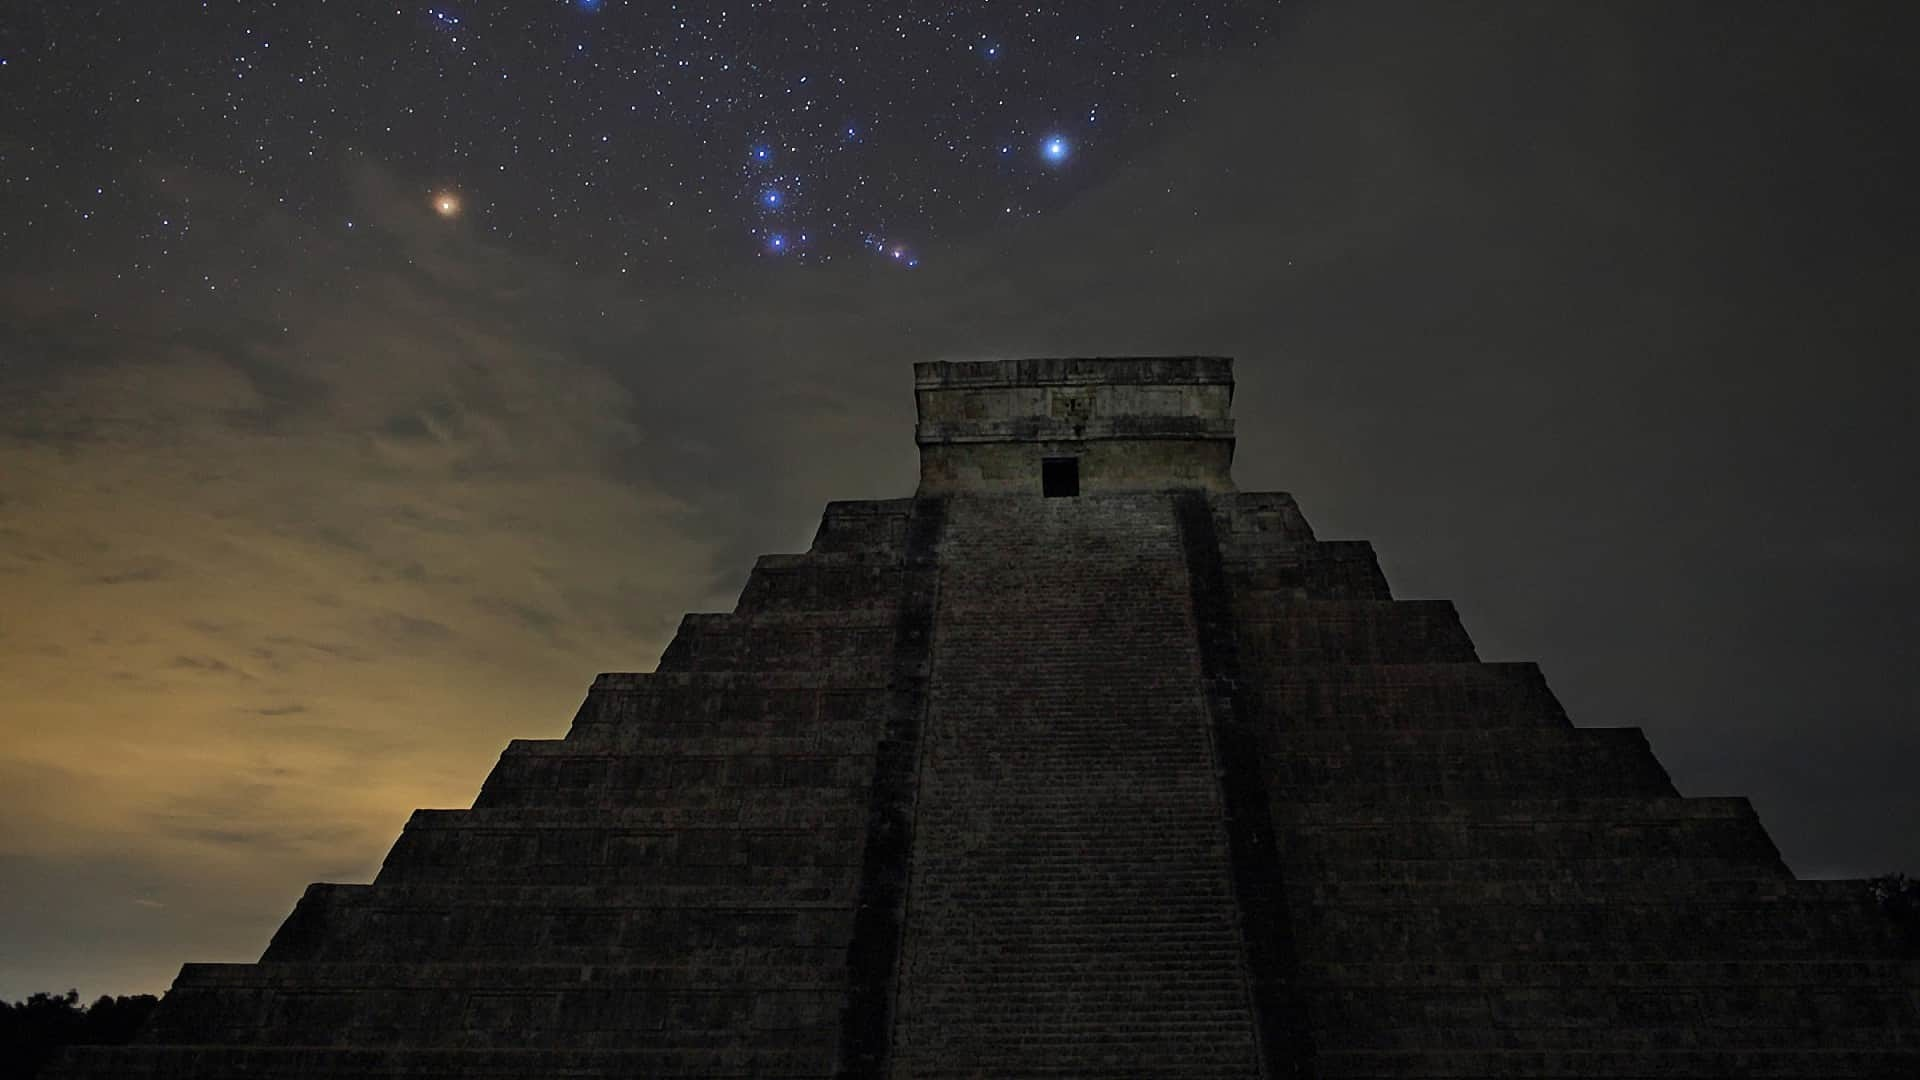 Res: 1920x1080, The Origin of our civilization: The Constellation of Orion | Ancient Code